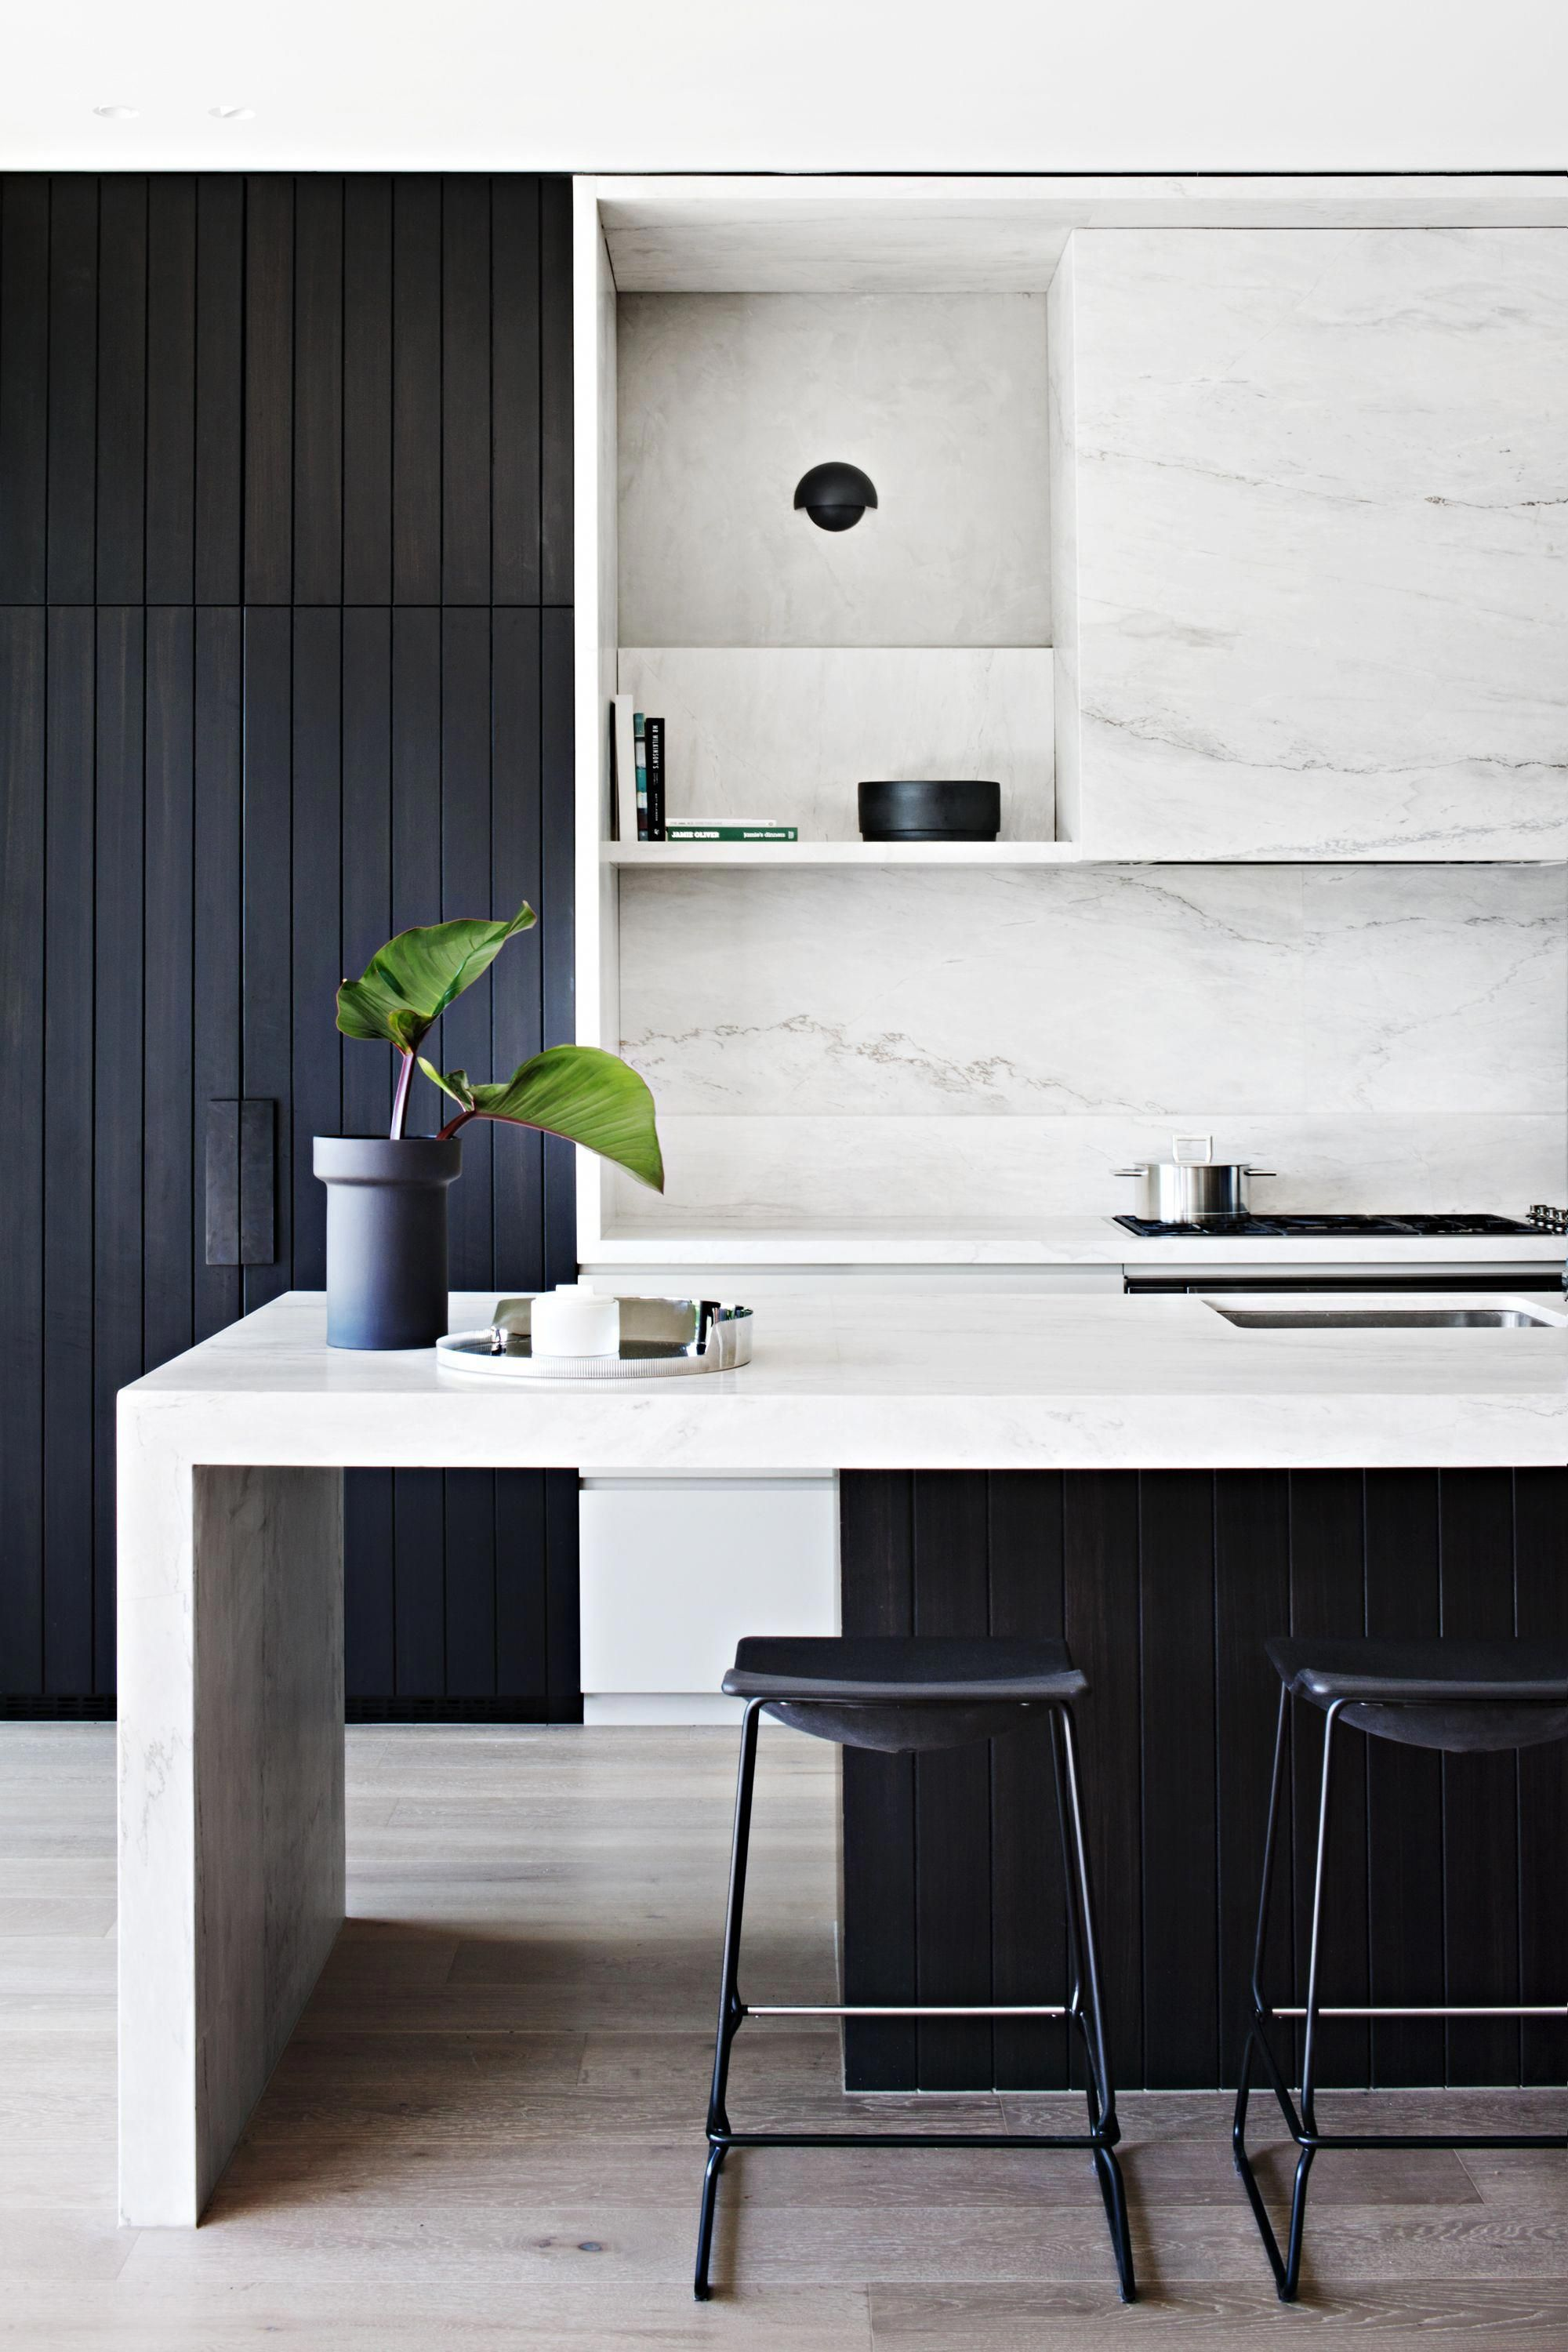 An Aussie Beachside Dwelling Aces the Black and White Trend | Hunker